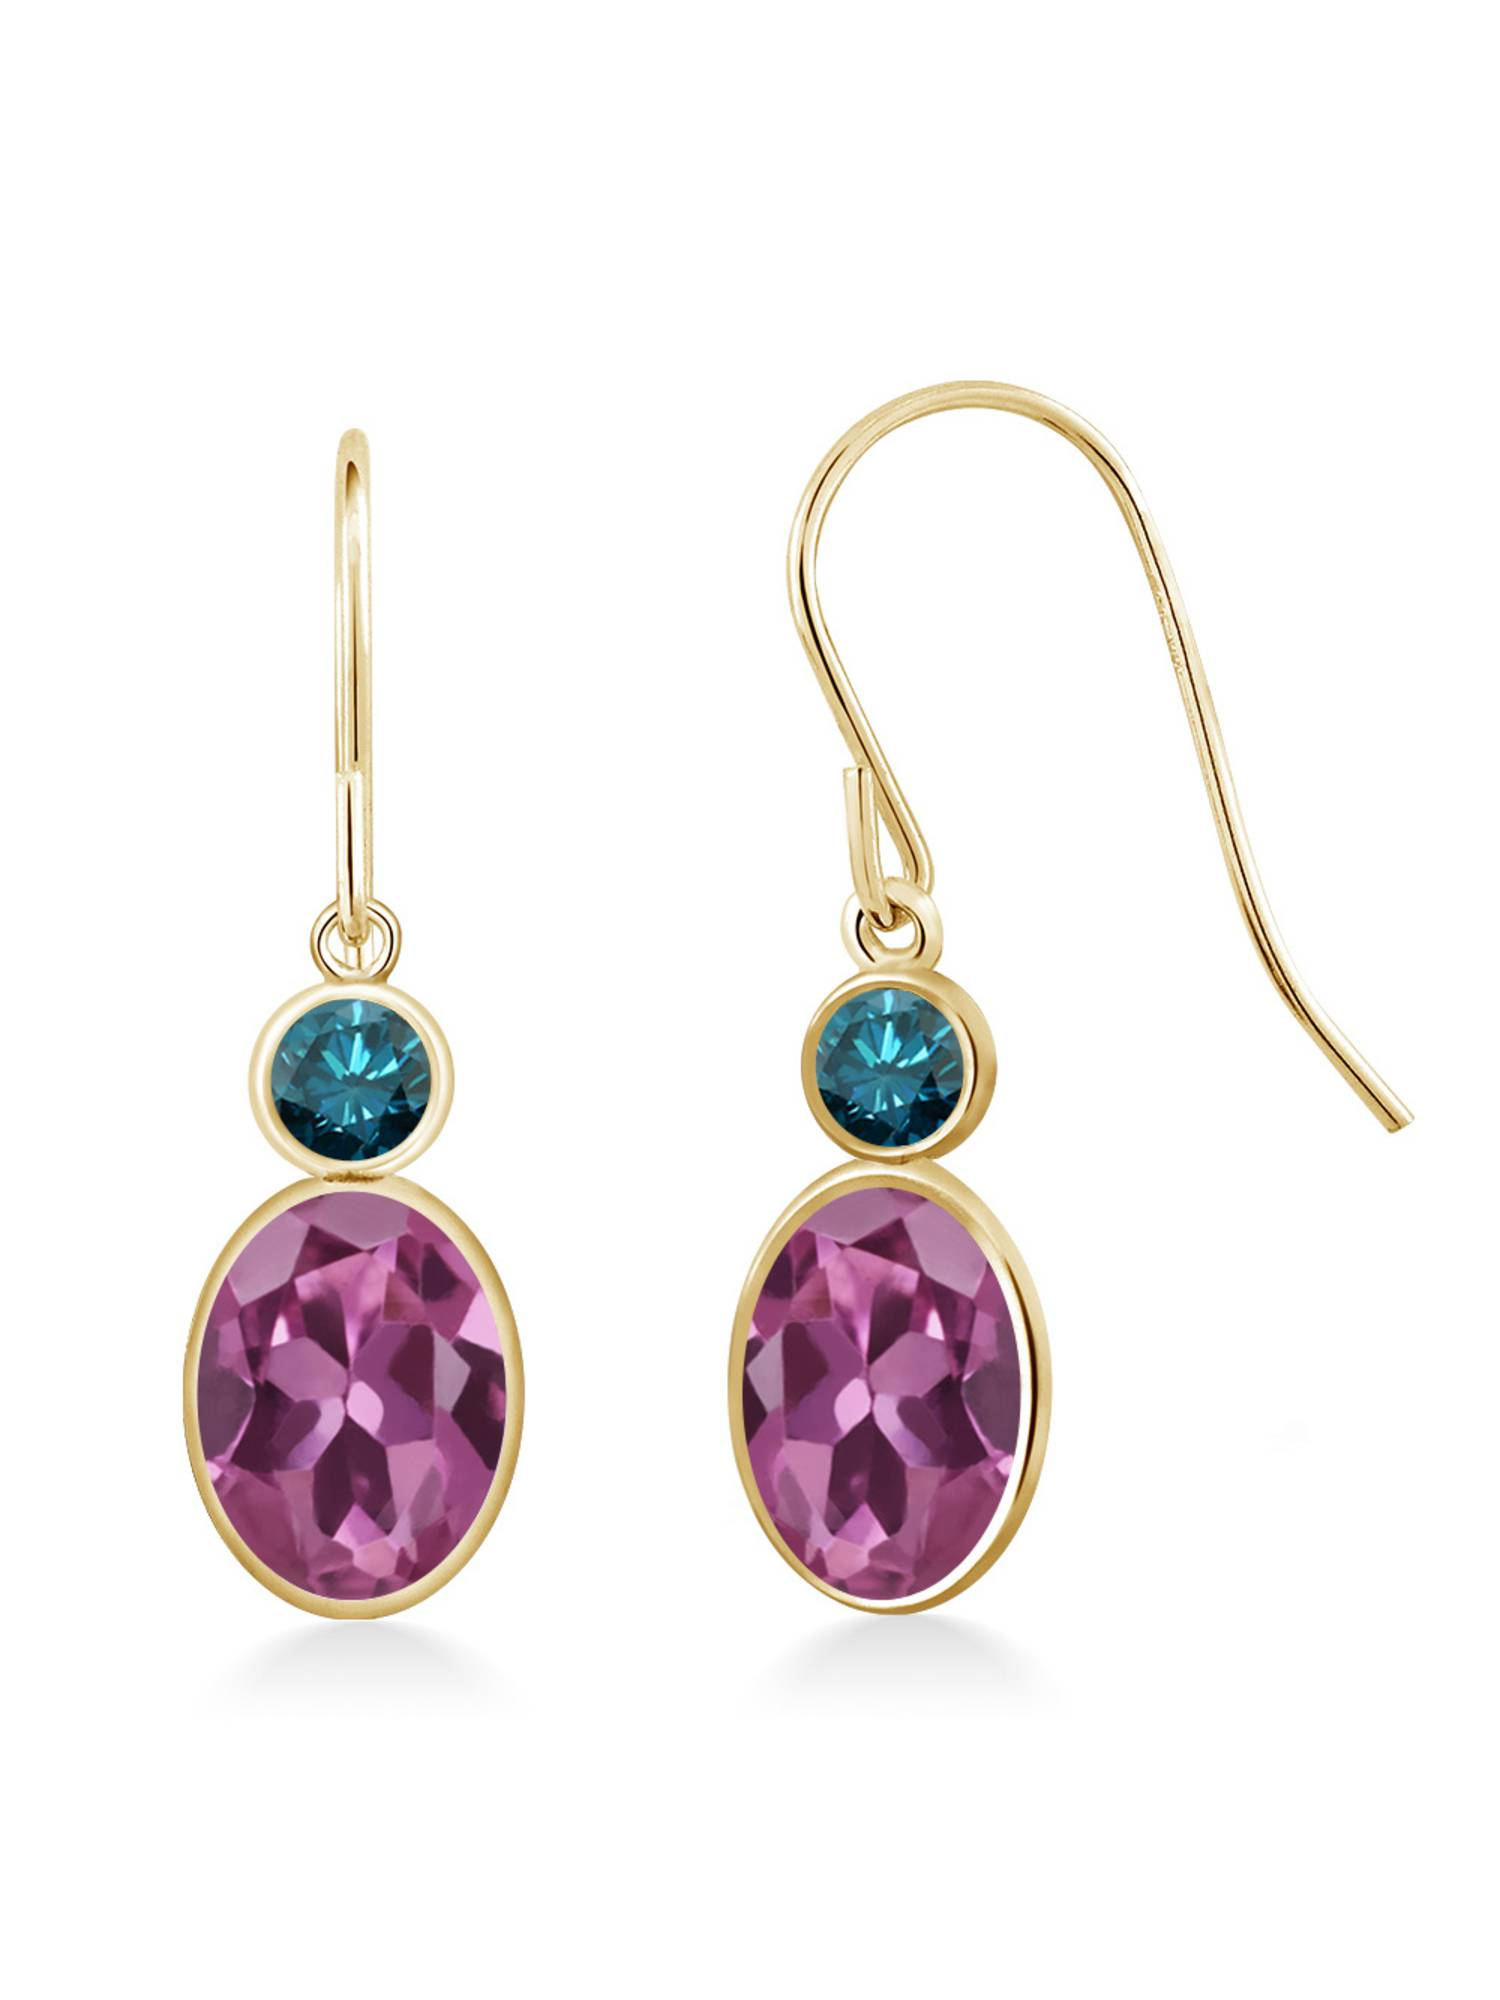 1.60 Ct Oval Pink Tourmaline AA Blue Diamond 14K Yellow Gold Earrings by